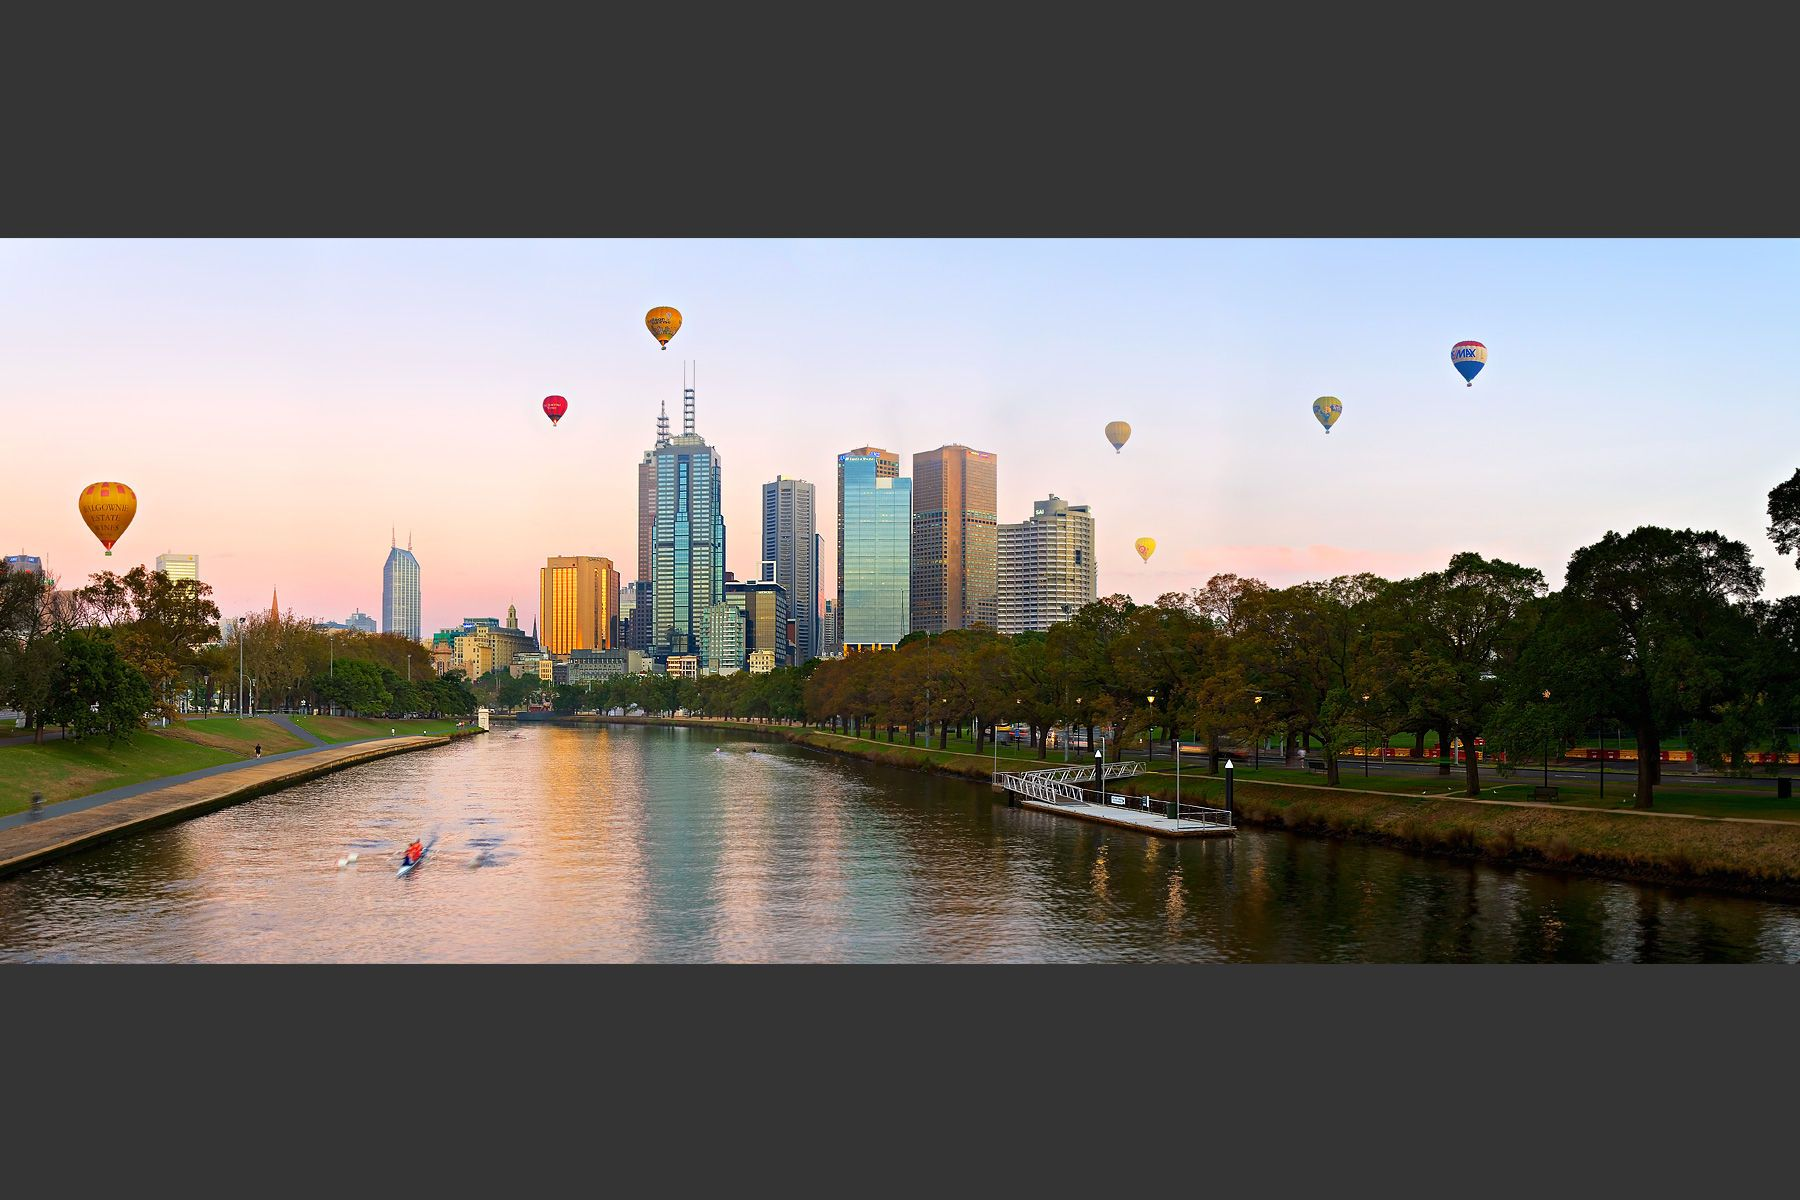 Hot air ballooning over Melbourne Melbourne, Ballooning